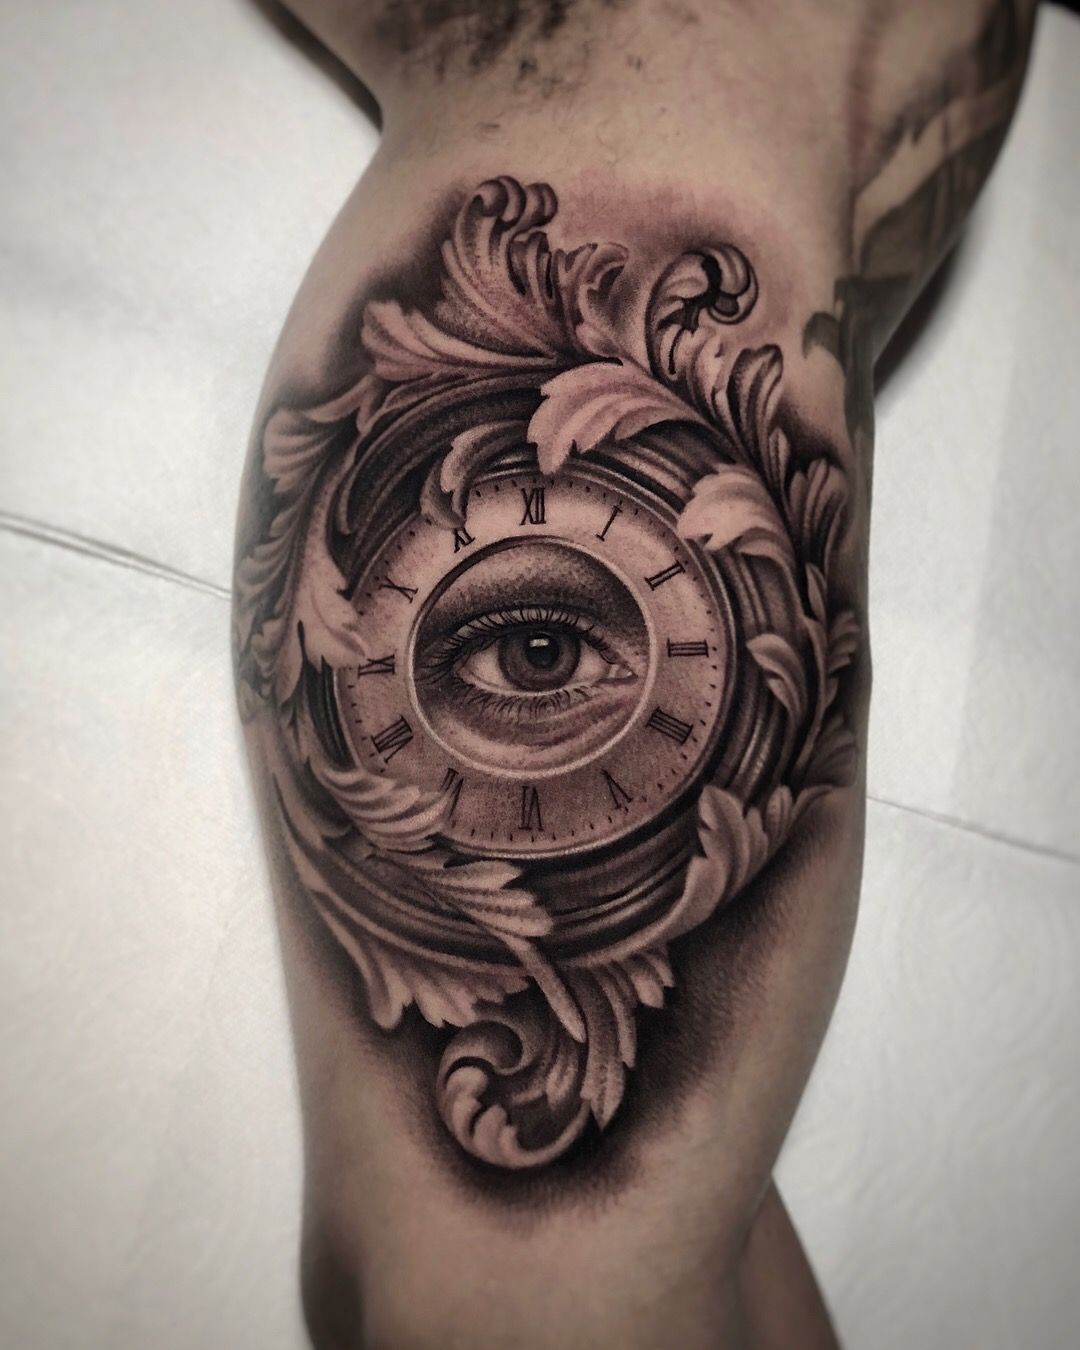 Black and grey eye clock tattoo by artist Kiljun. 시계 문신